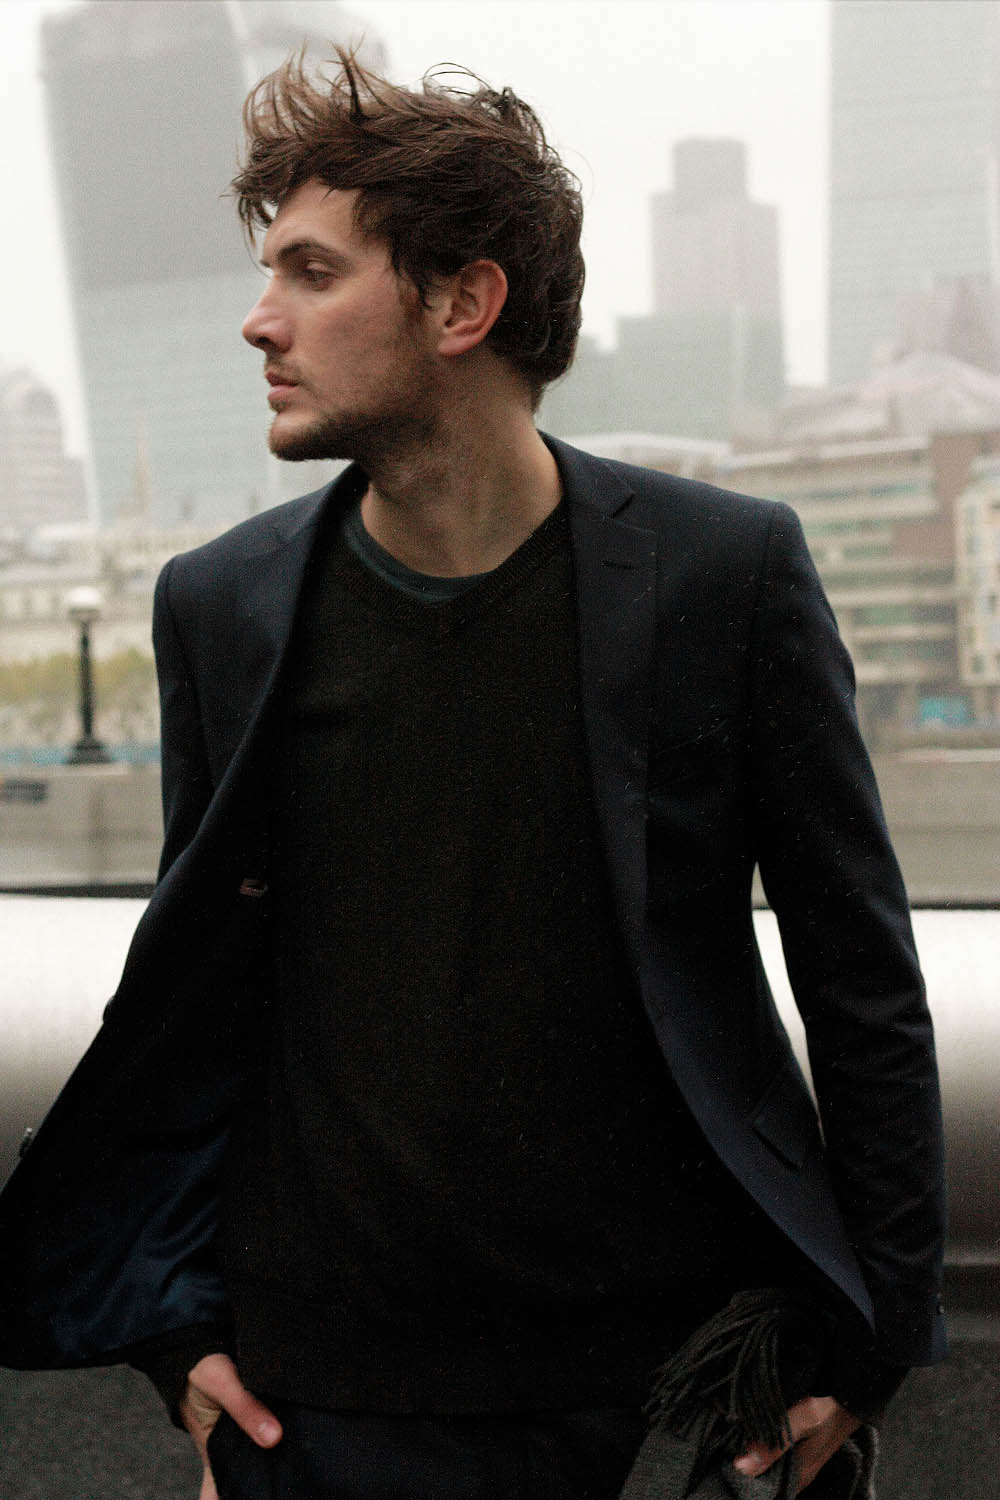 The-Fashion-Jumper-black-suit-London-11